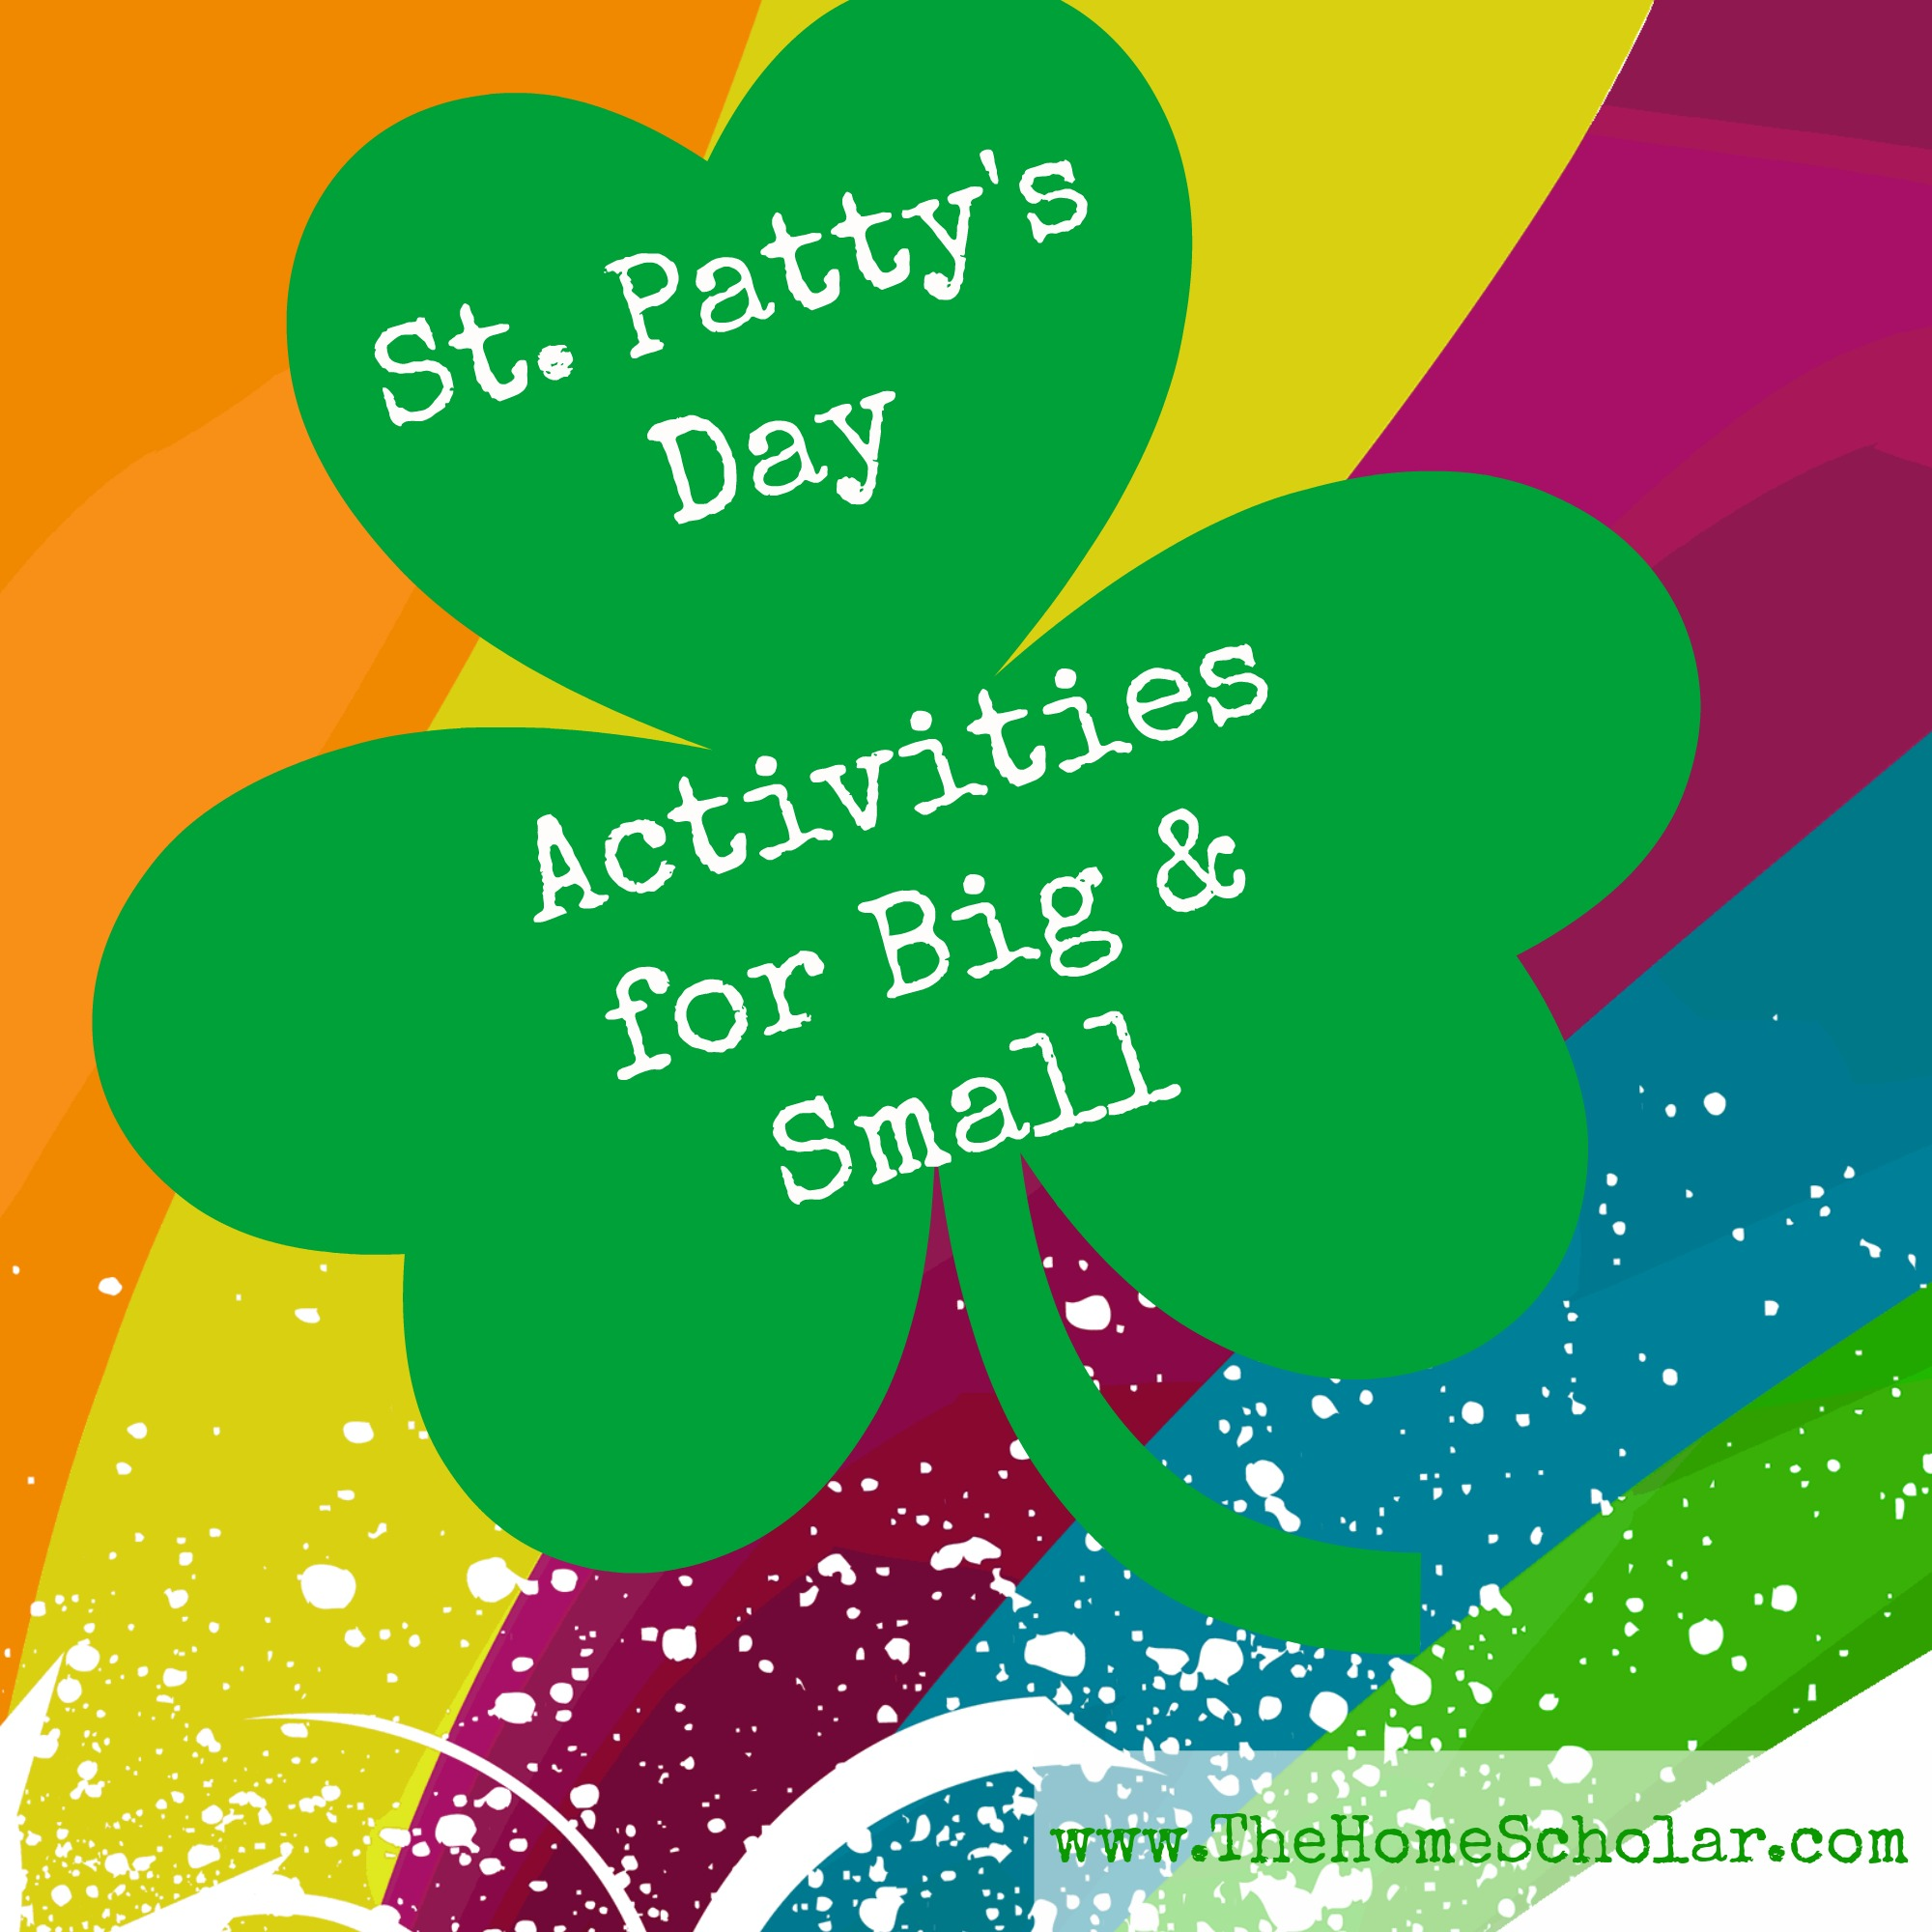 St Patrick's Day Activities for Big and Small